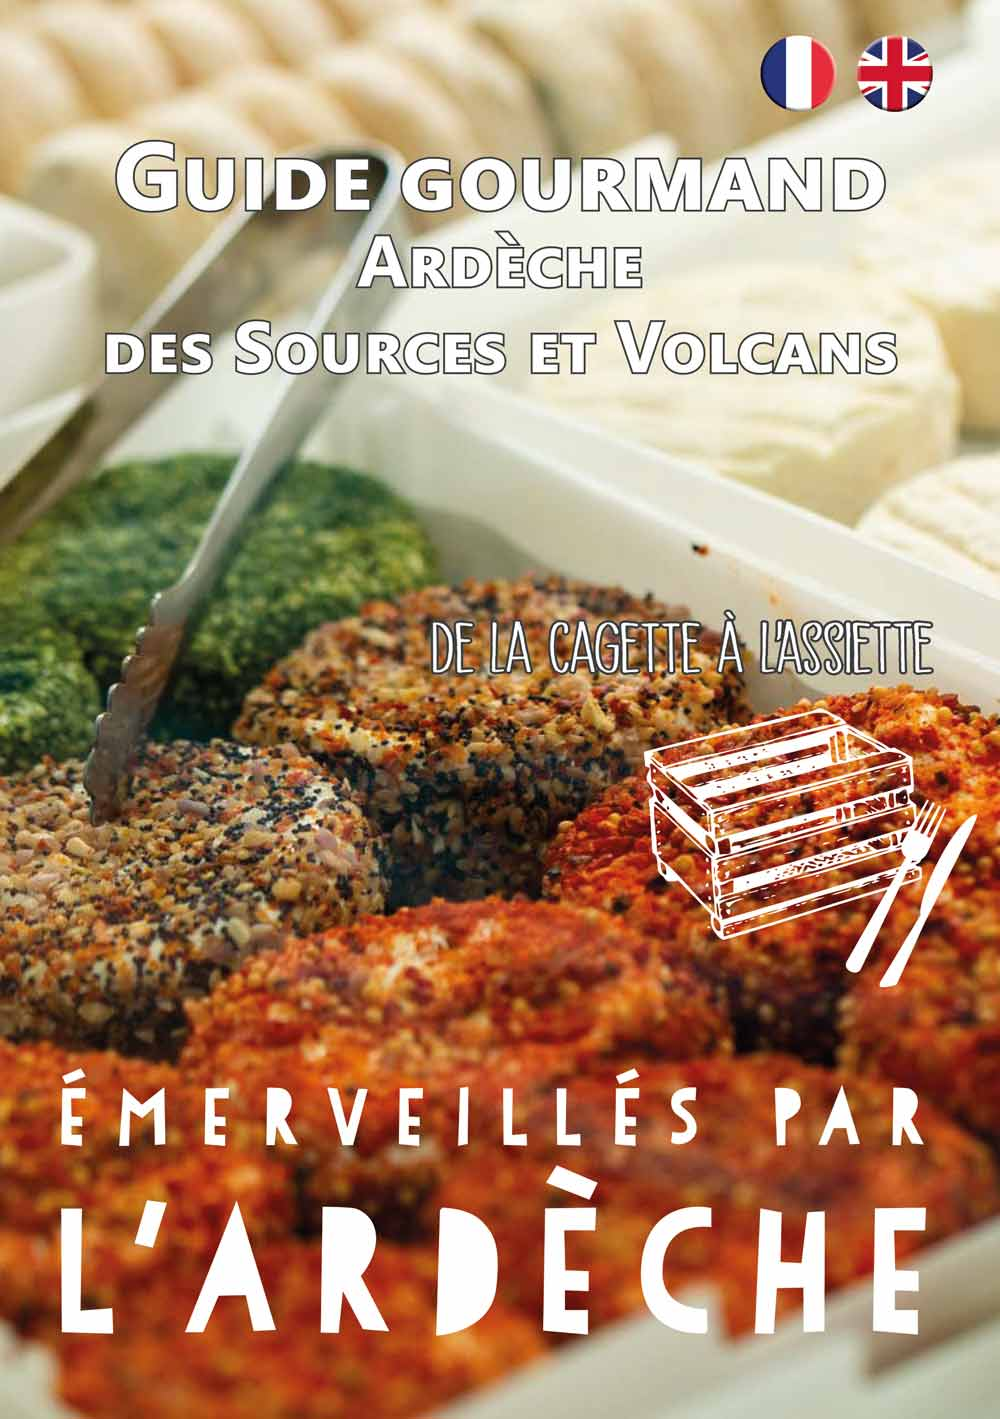 Couverture-Guide-gourmand-2021